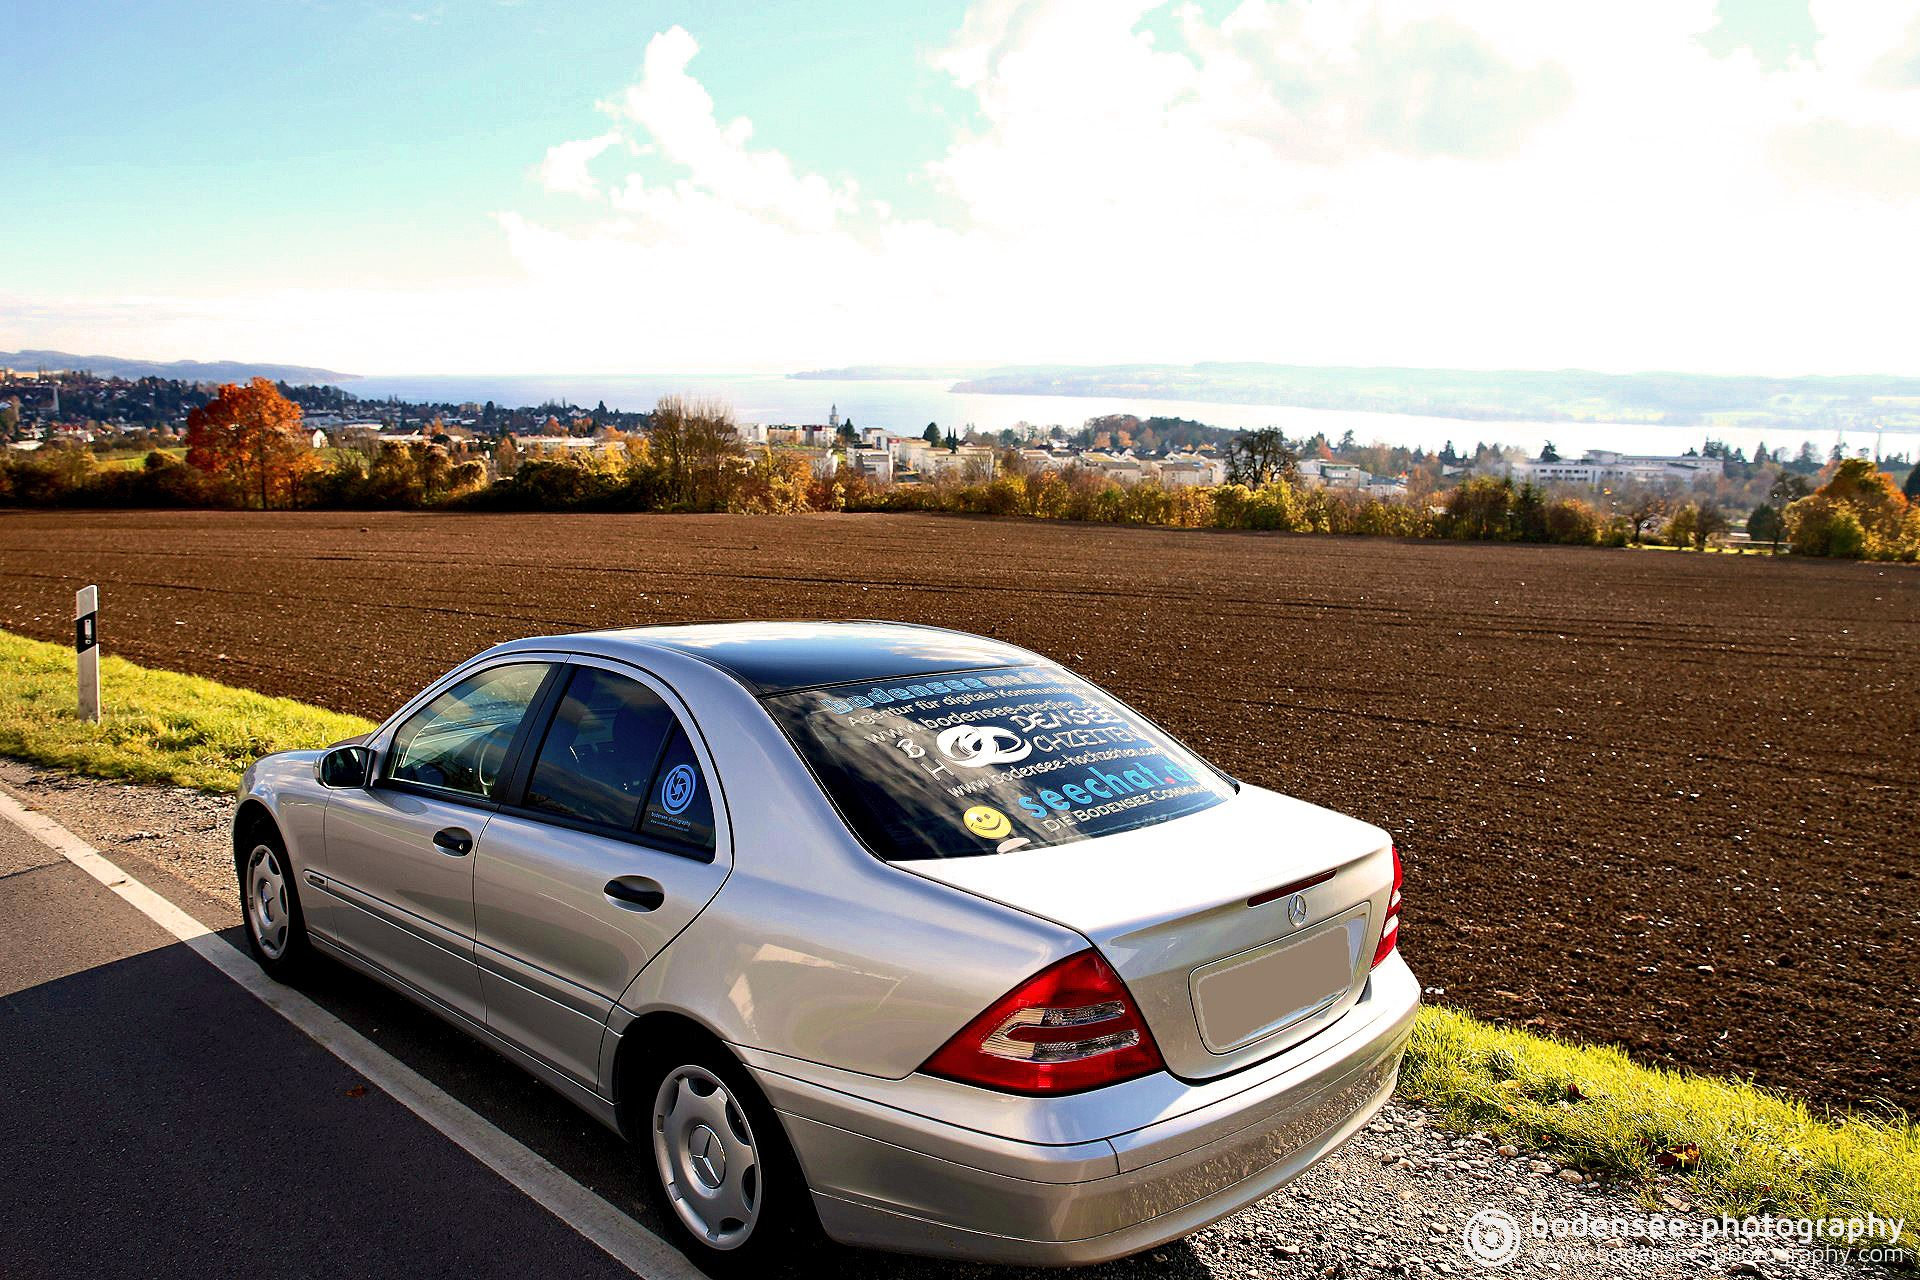 Car-Shooting © reinhold@wentsch.com | bodensee.photography